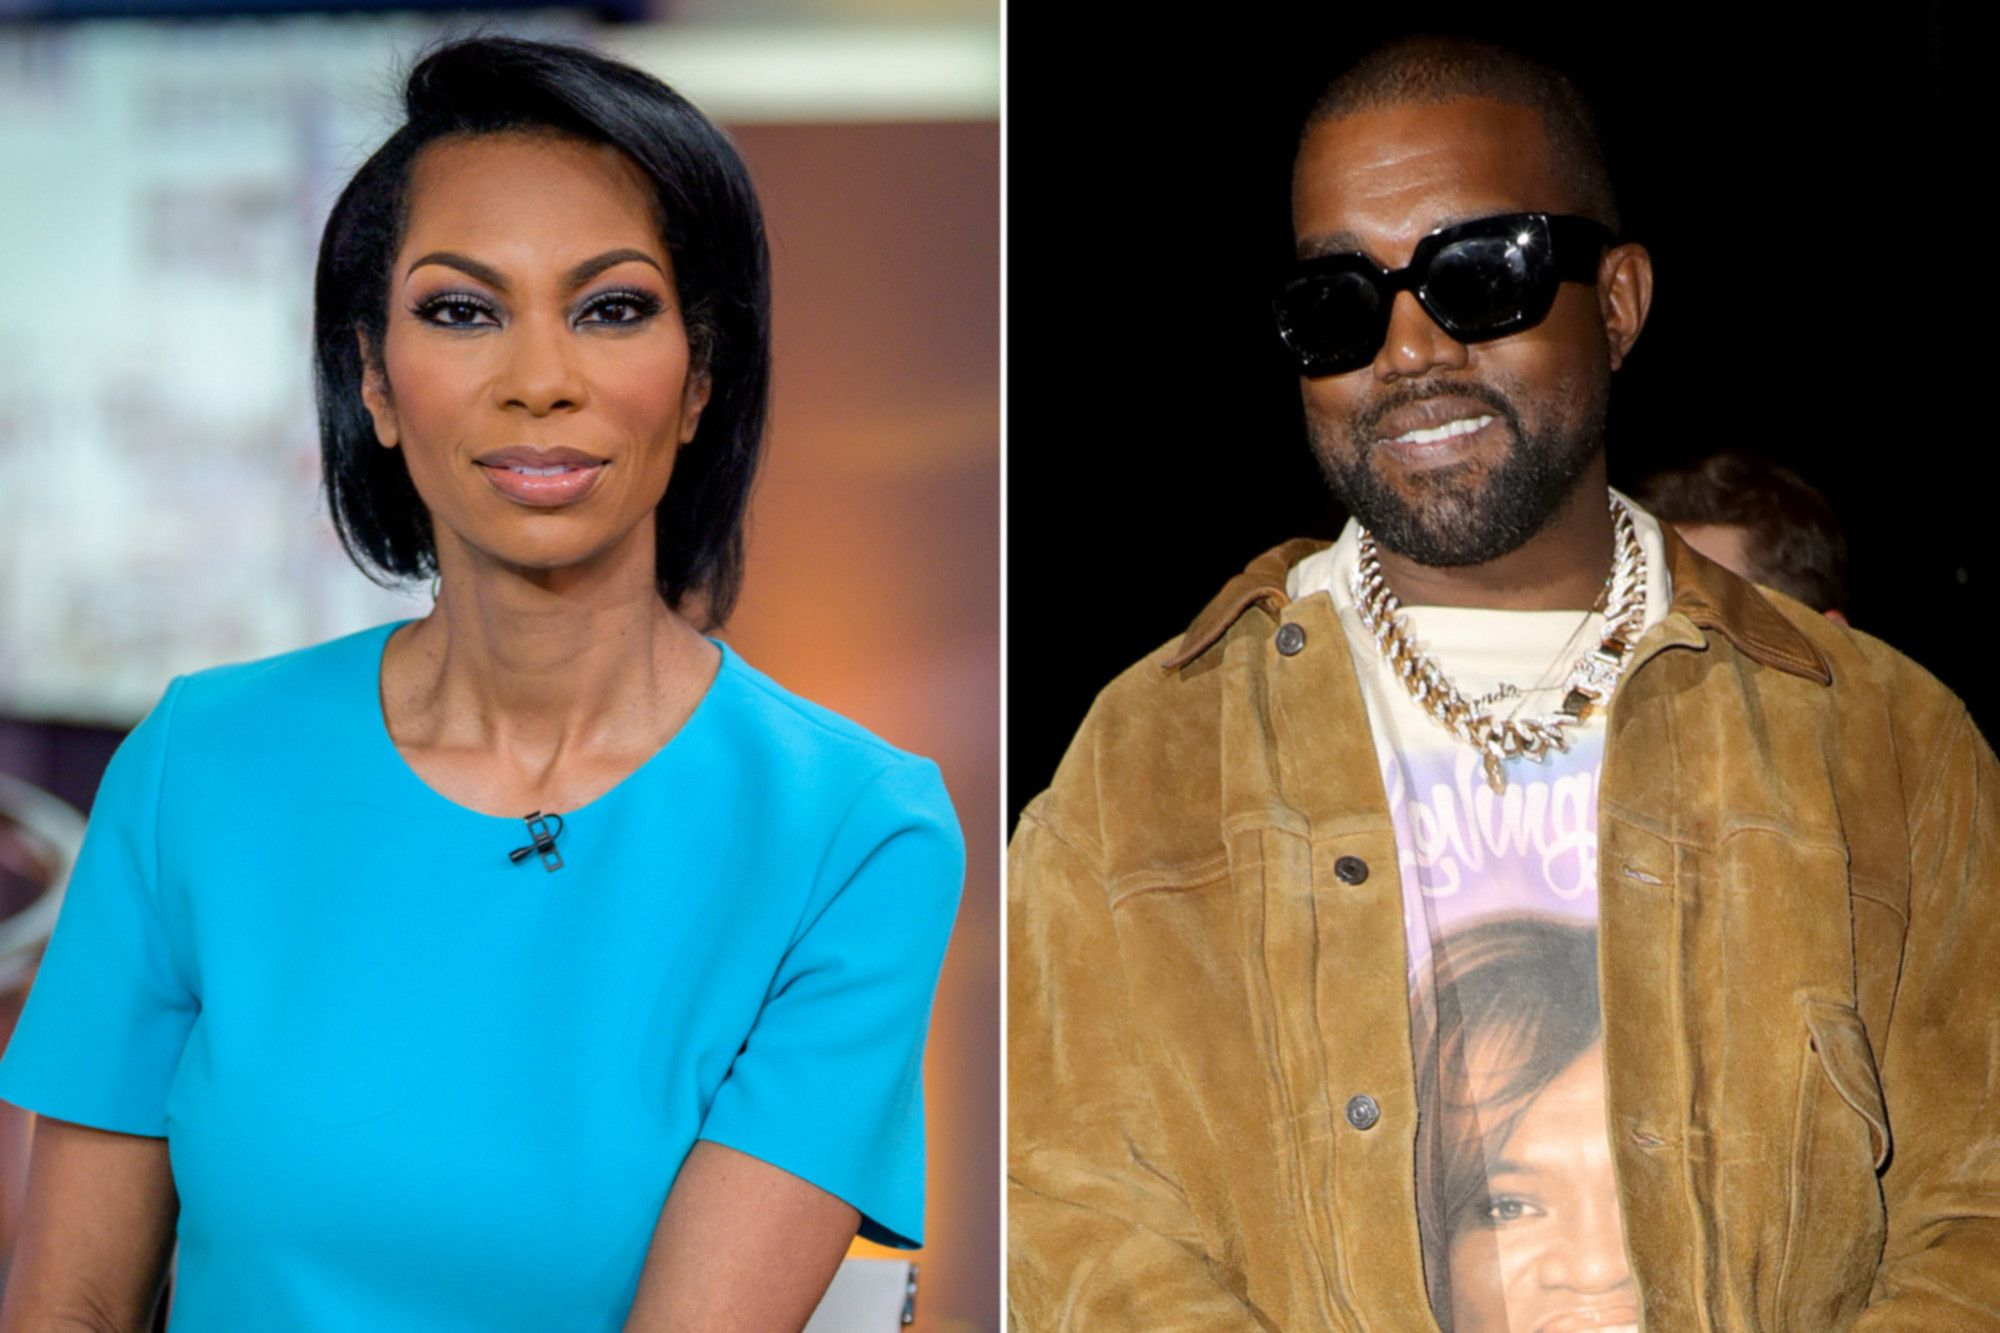 Harris Faulkner Kanye Wests Presidential Bid Cant Be Ignored By Either Party In 2020 Kanye West Harris Faulkner Faulkner